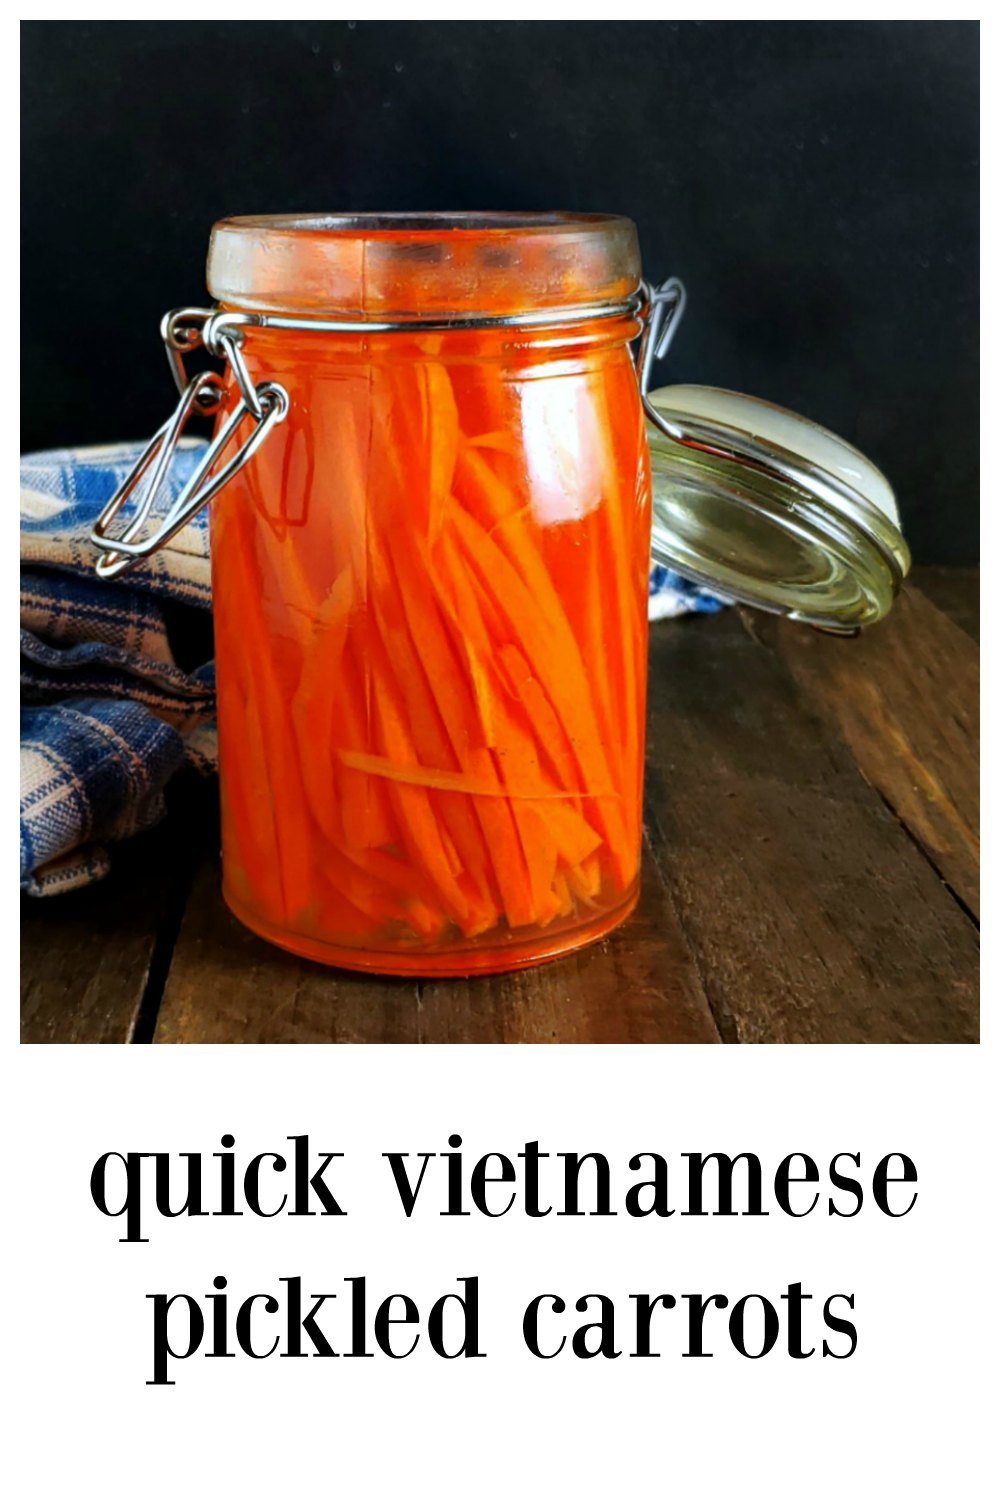 Quick Vietnamese Pickled Carrots - So fresh! Tangy and sweet and minutes to make! You'll love them on Bahn Mi or in spring rolls, wraps & bowls. #QuickPickledCarrots #QuickPickledVietnameseCarrots #Carrots #Vietnamese #Asian #AsianPickles